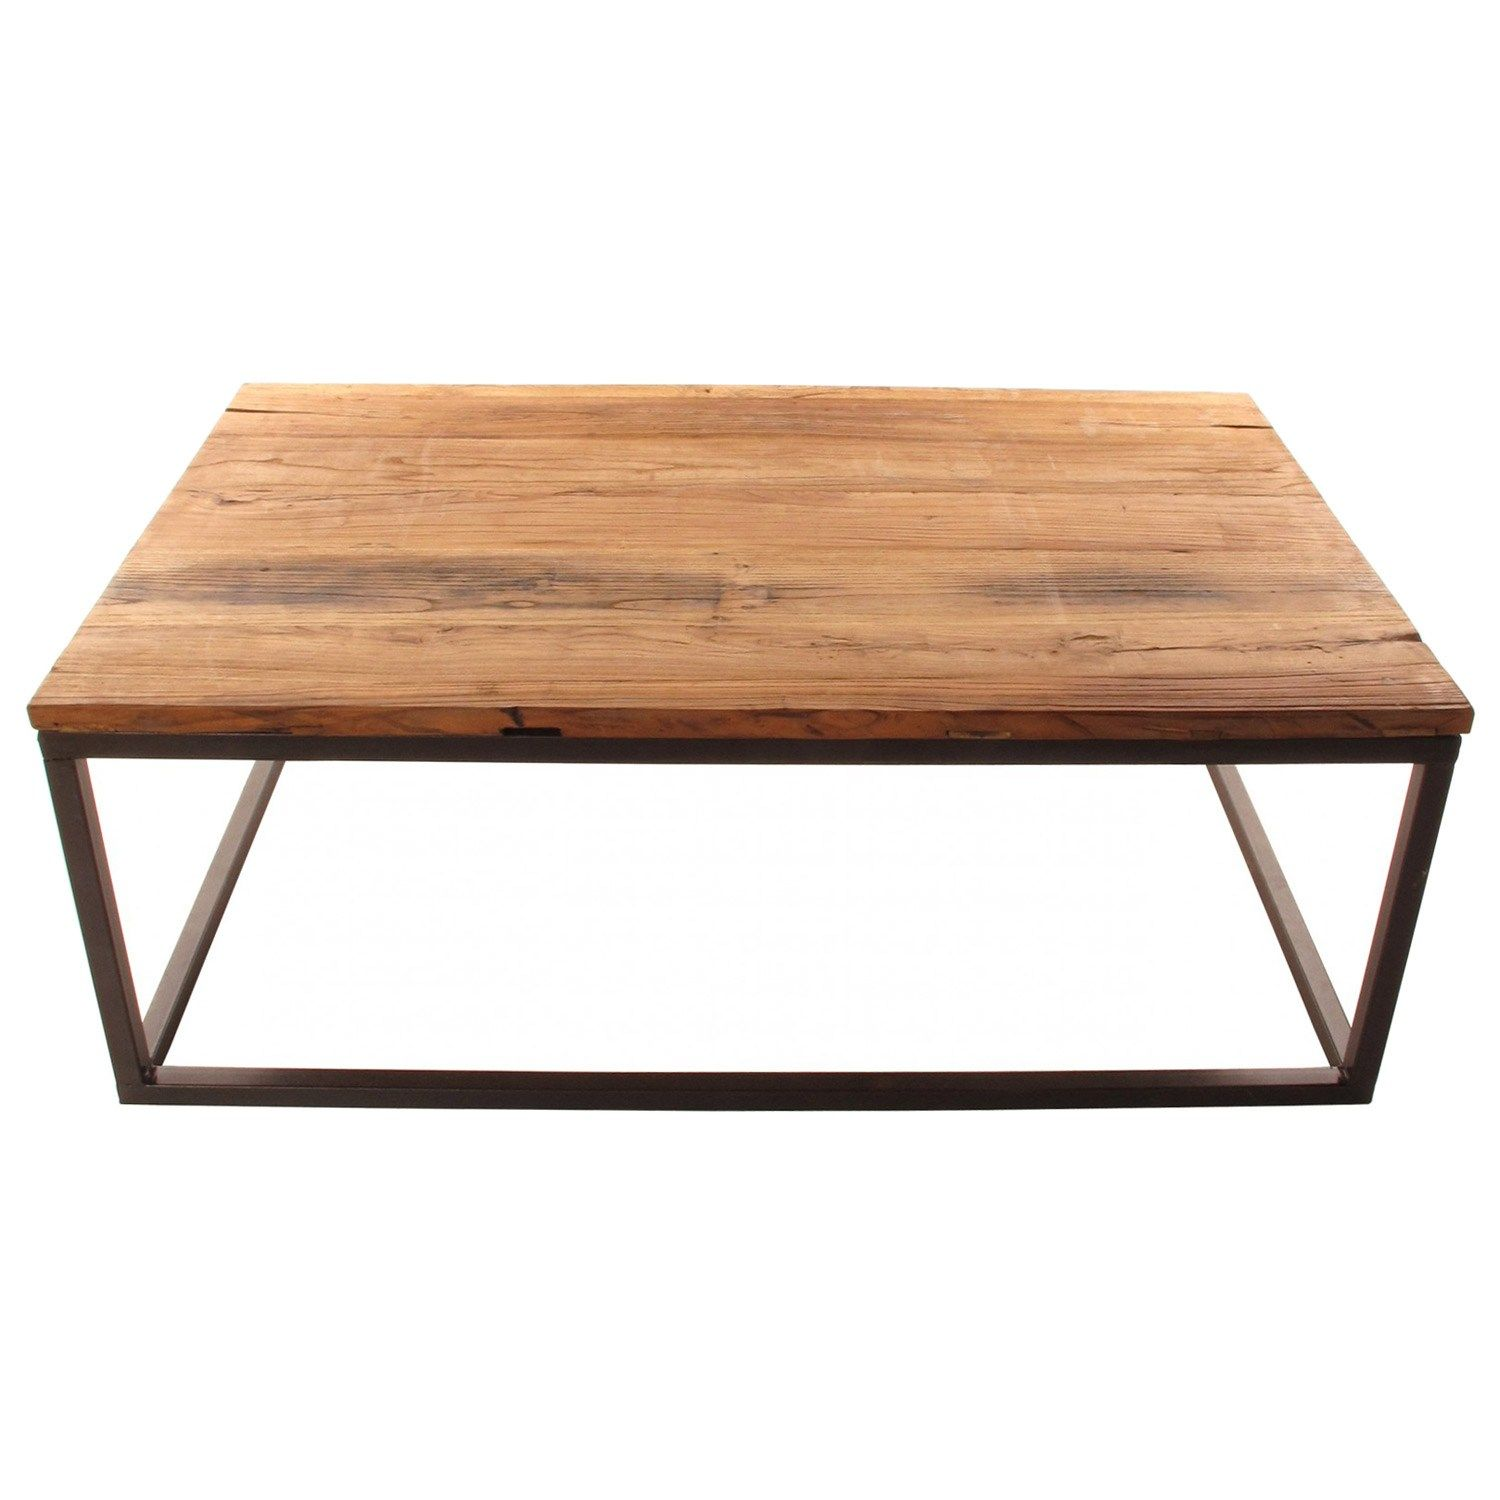 This Modern Coffee Tables Top Gives New Life To Reclaimed